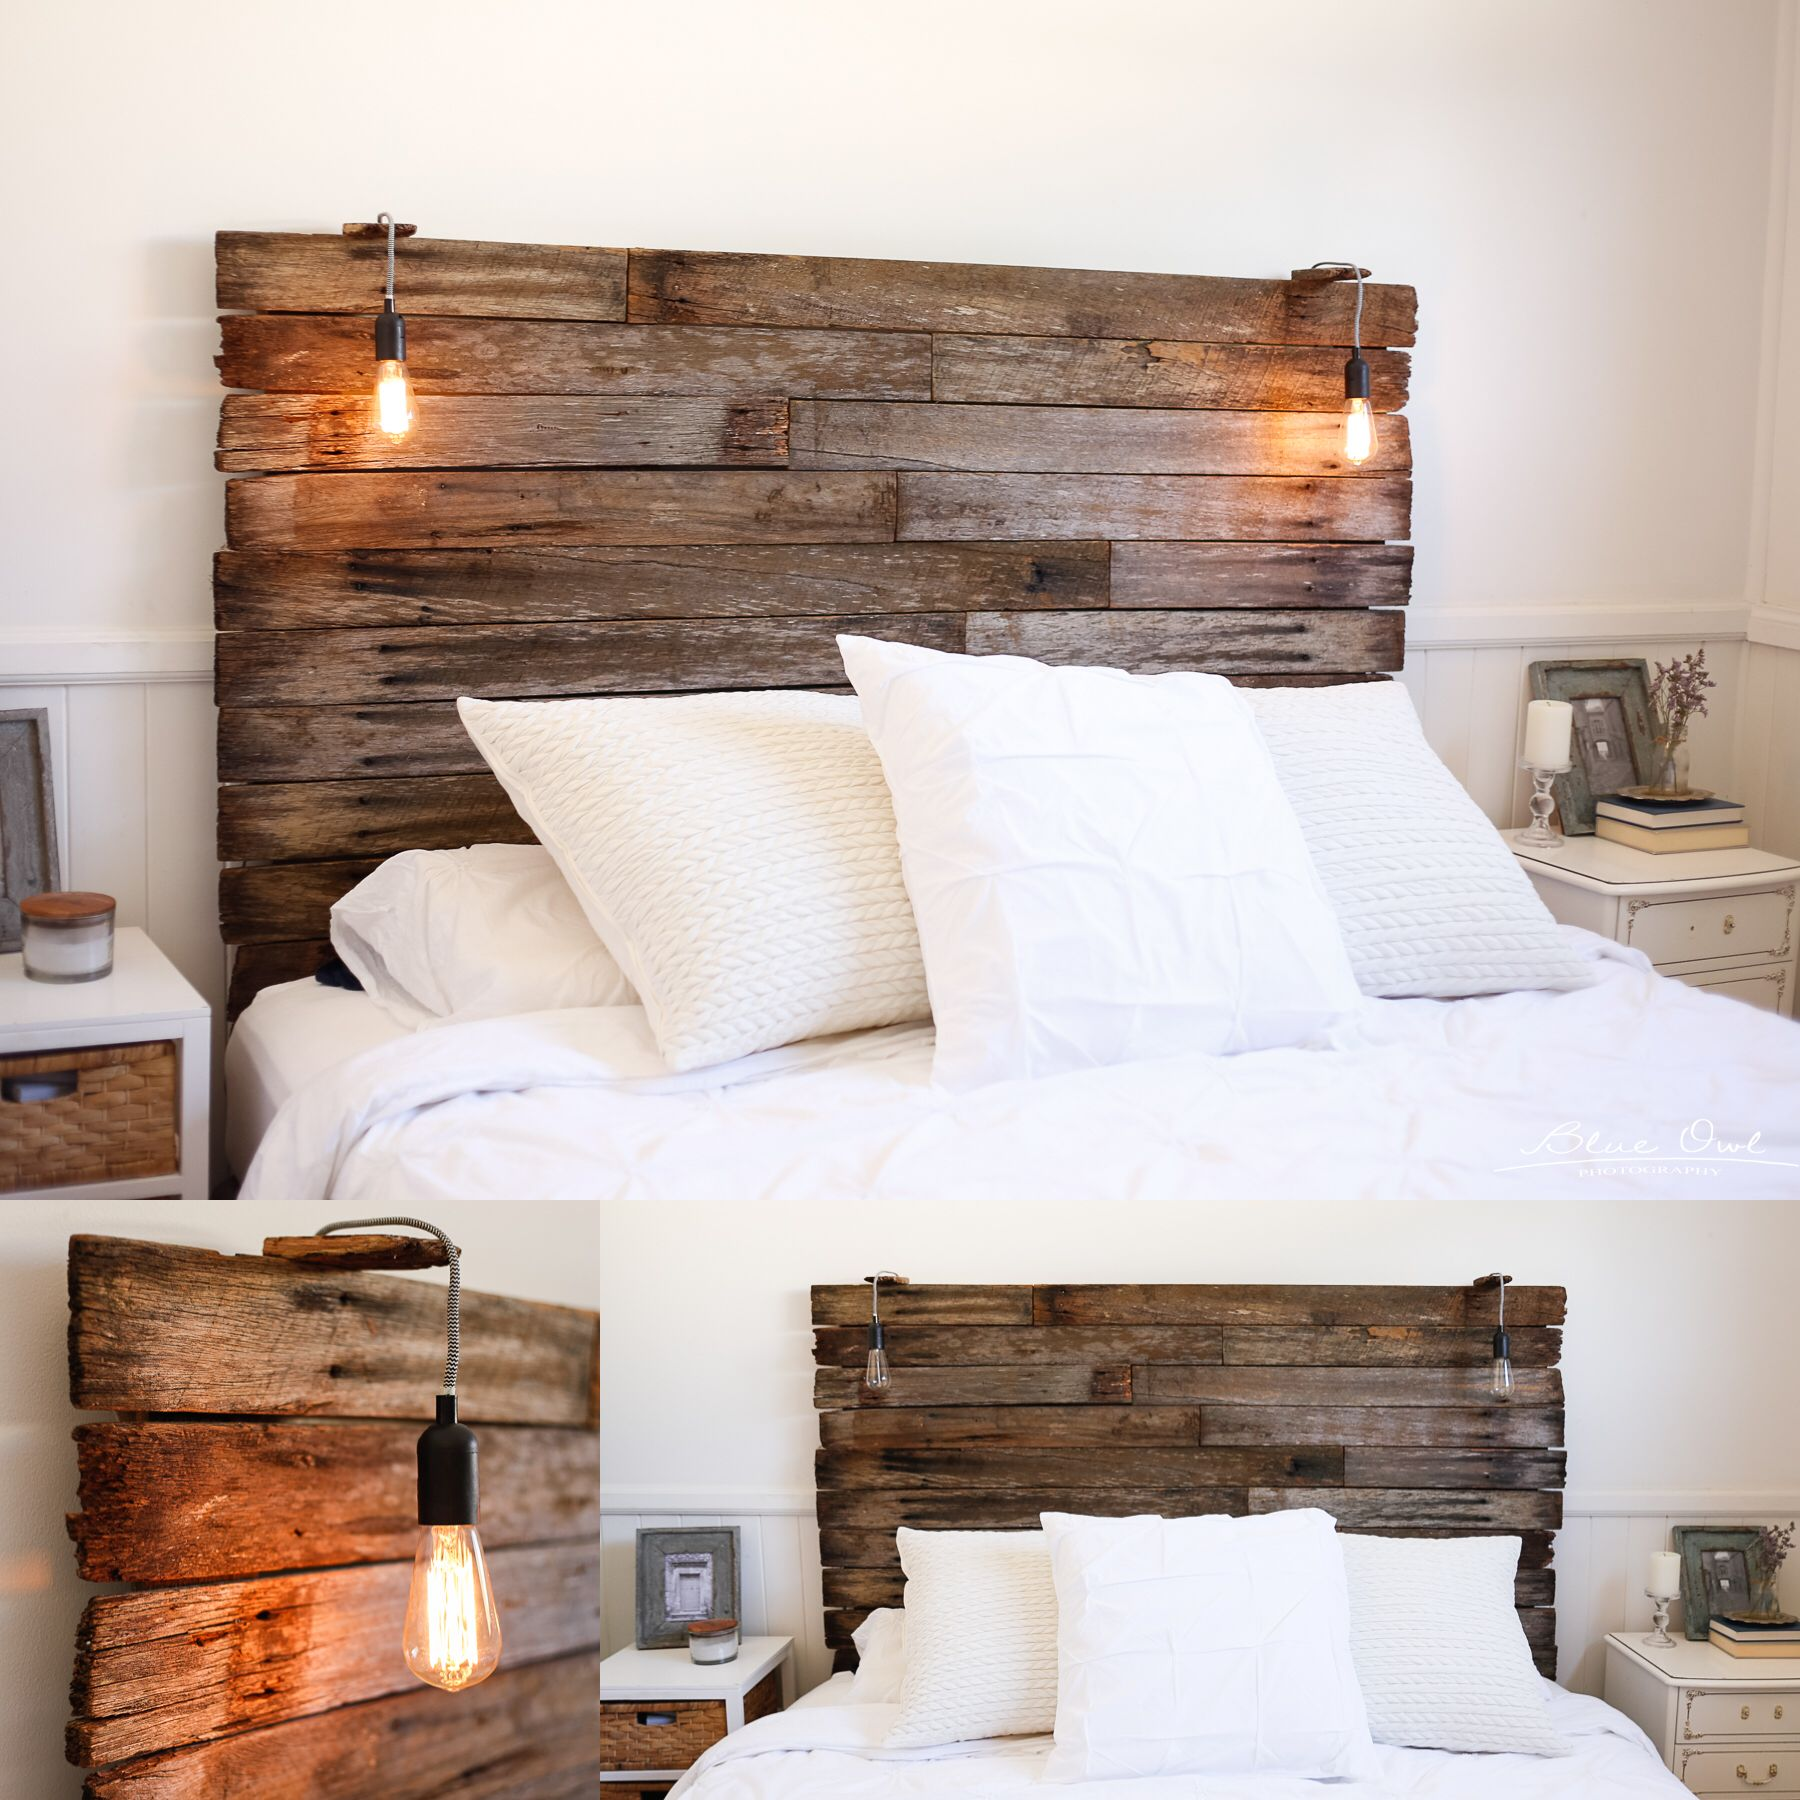 my recycled rustic fence pailing timber bedhead lamp kmart hack for the lighting and kmart. Black Bedroom Furniture Sets. Home Design Ideas